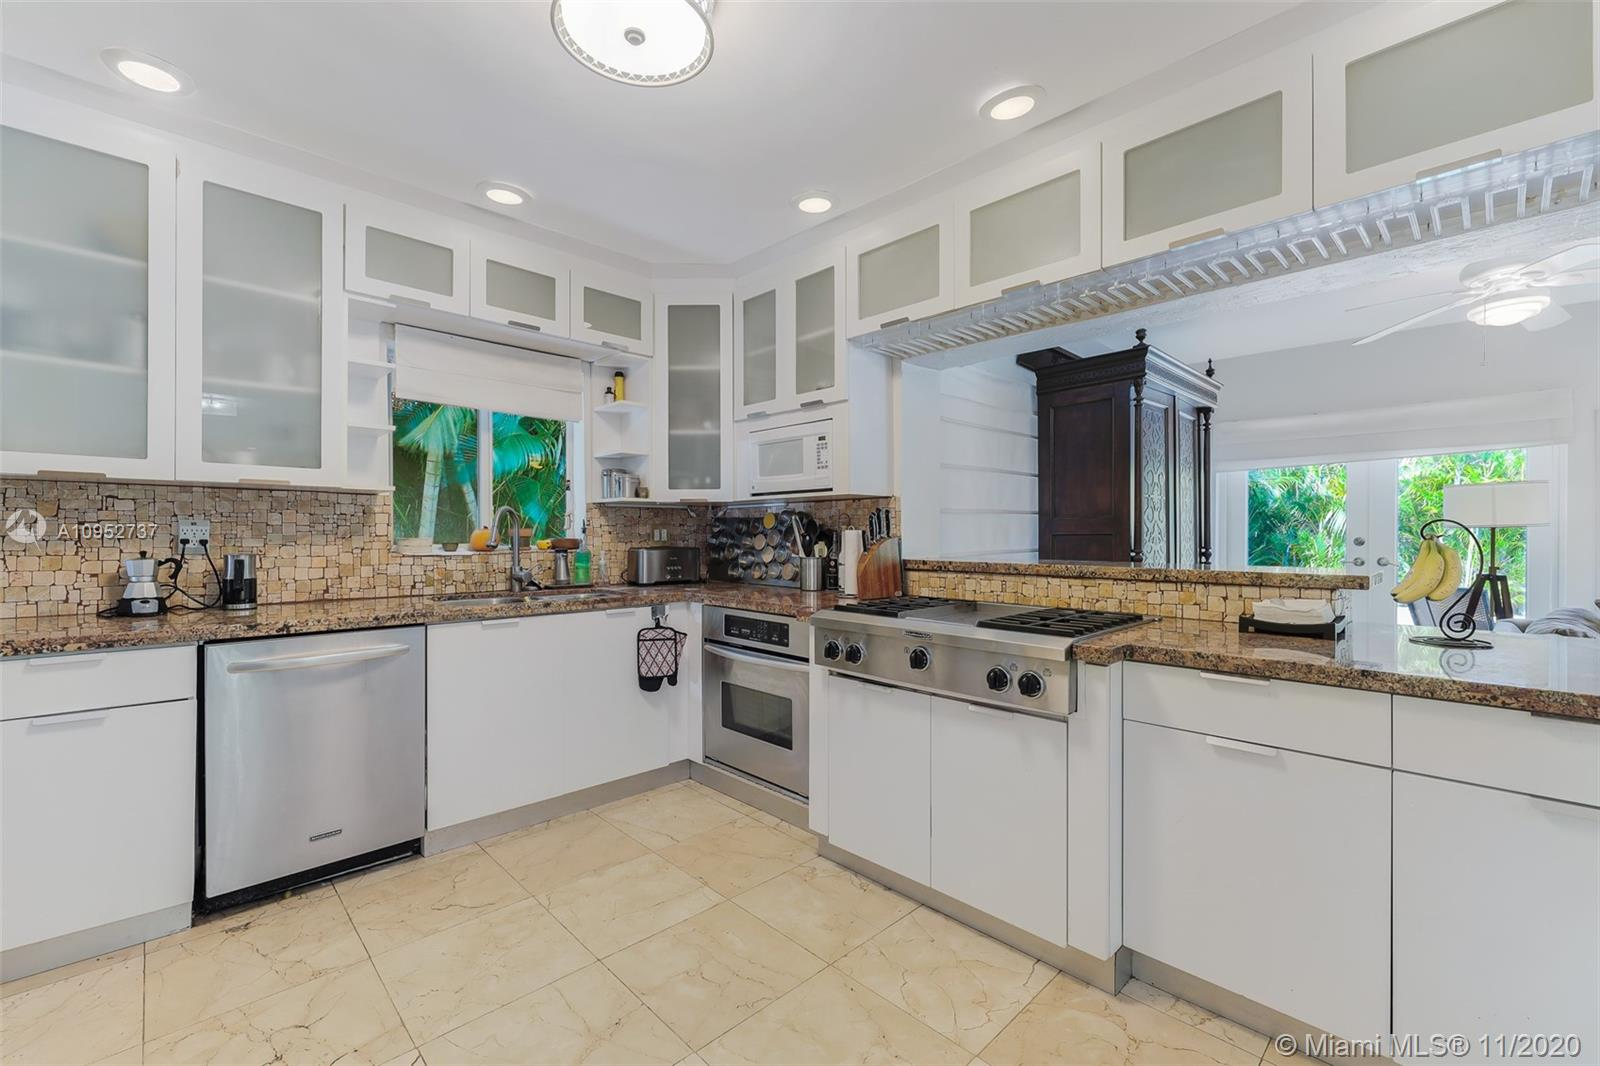 1263 NE 92nd St, Miami Shores, Florida 33138, 3 Bedrooms Bedrooms, ,3 BathroomsBathrooms,Residential,For Sale,1263 NE 92nd St,A10952737